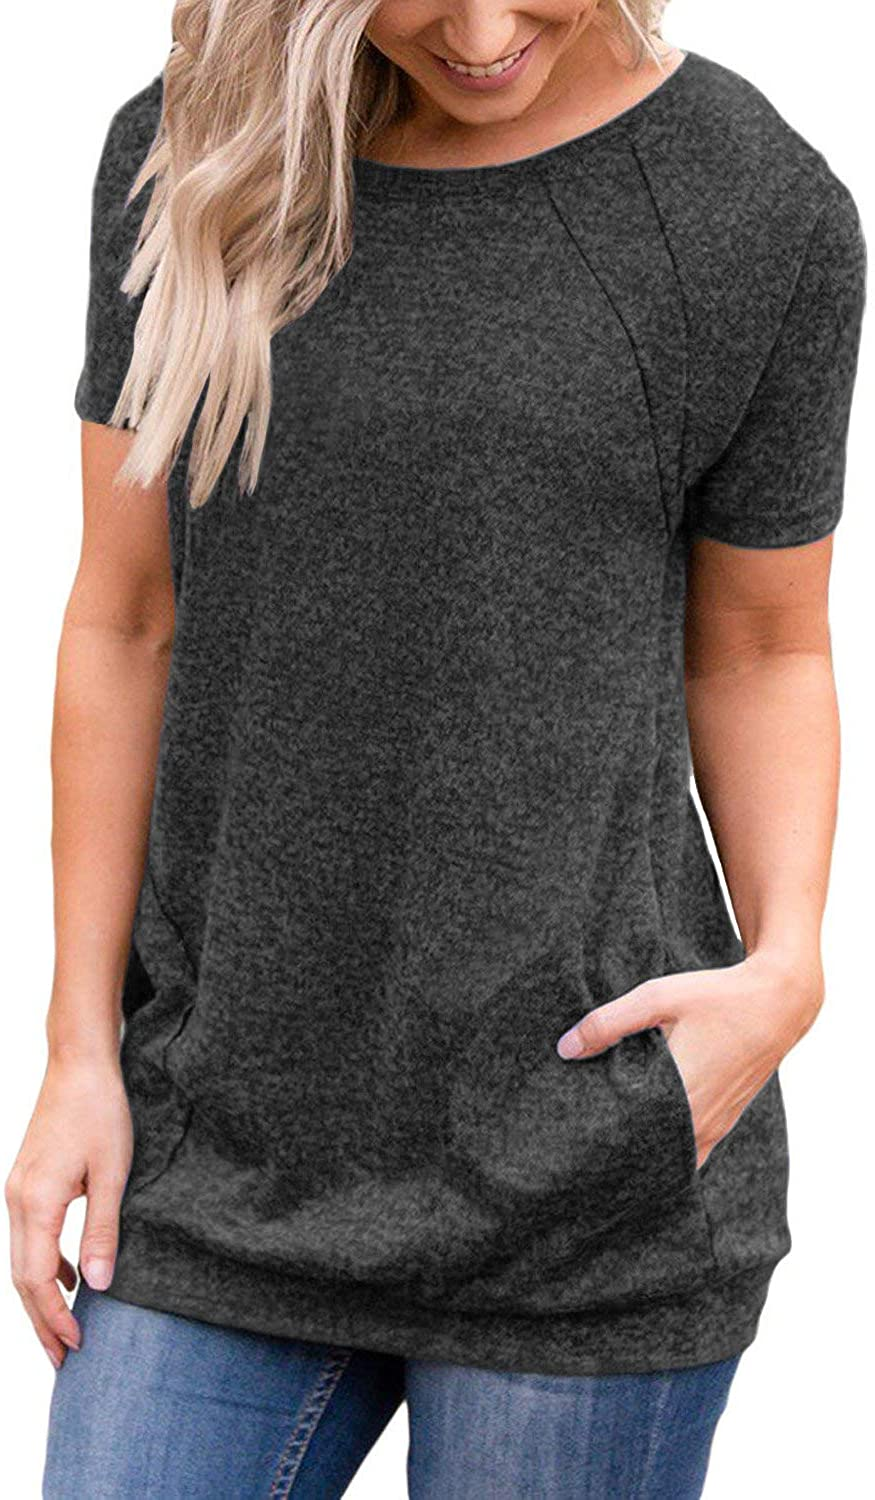 Muhadrs Women's Long/Short Sleeve Casual Tunic Tops Loose Blouse Shirts with Pockets